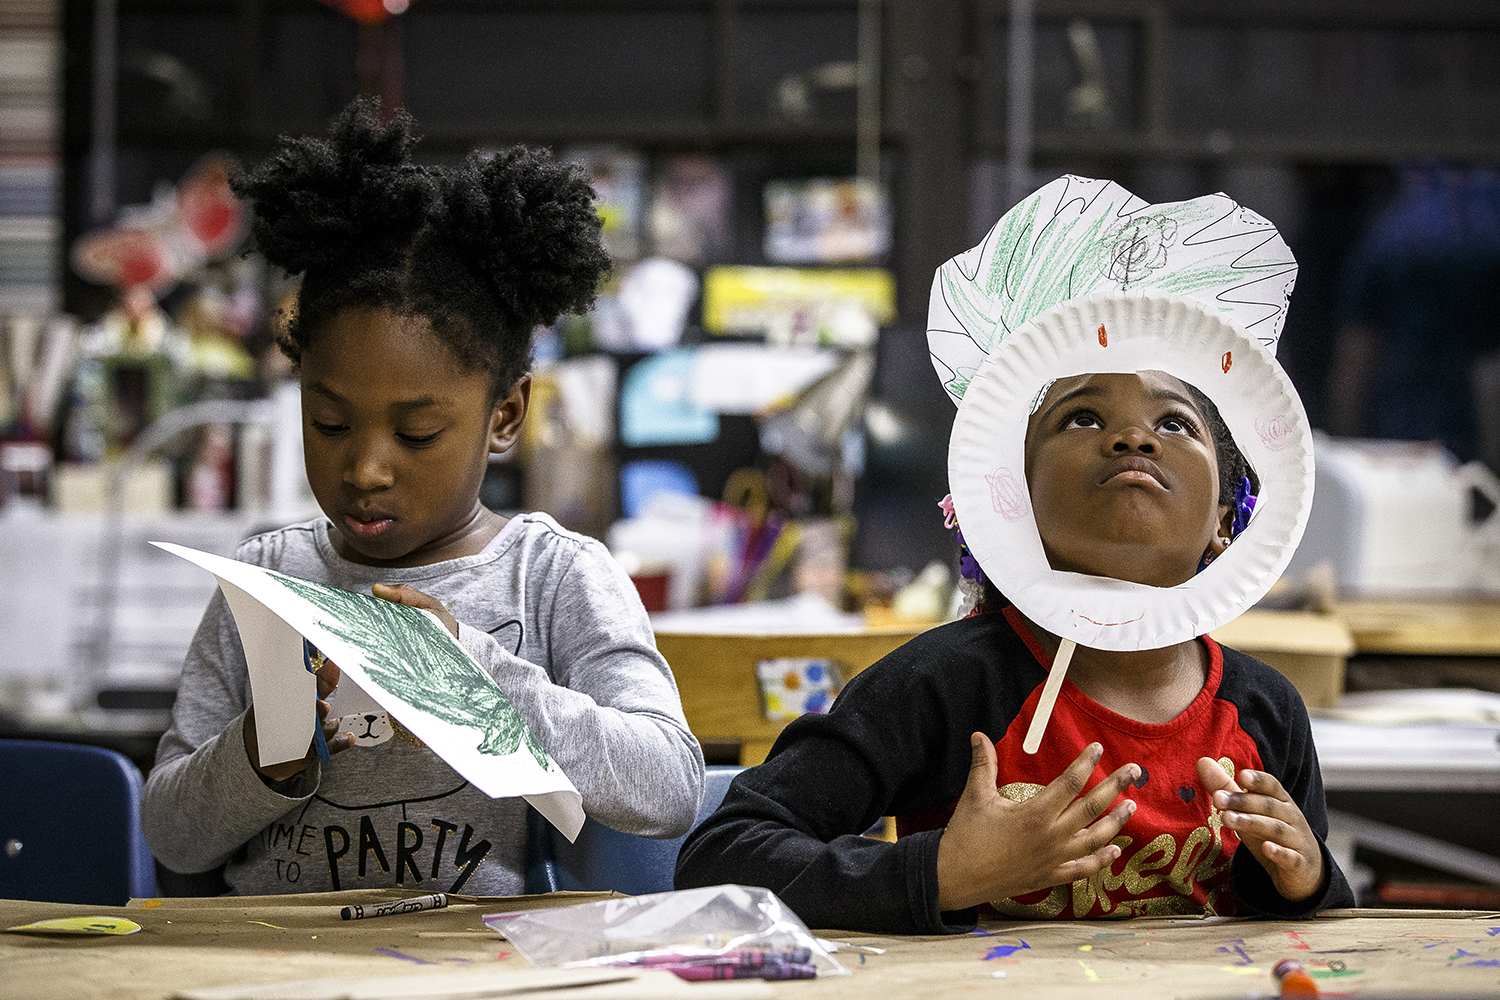 """Khaliyah Craig, right, tries out her Thing One mask from the Dr. Seuss book """"The Cat In the Hat"""" as McKenzie Woods, left, finishes up her own version as the kindergartners, and fellow students and their families, attend Literacy Night celebrating reading at Ball Charter School, Thursday, March 1, 2018, in Springfield, Ill. The event, which included the mask making, poetry out loud, guest reader and a family reader's theater, is part of the National Education Association's Read Across America program that celebrates reading on the birthday of author Dr. Seuss.  [Justin L. Fowler/The State Journal-Register]"""